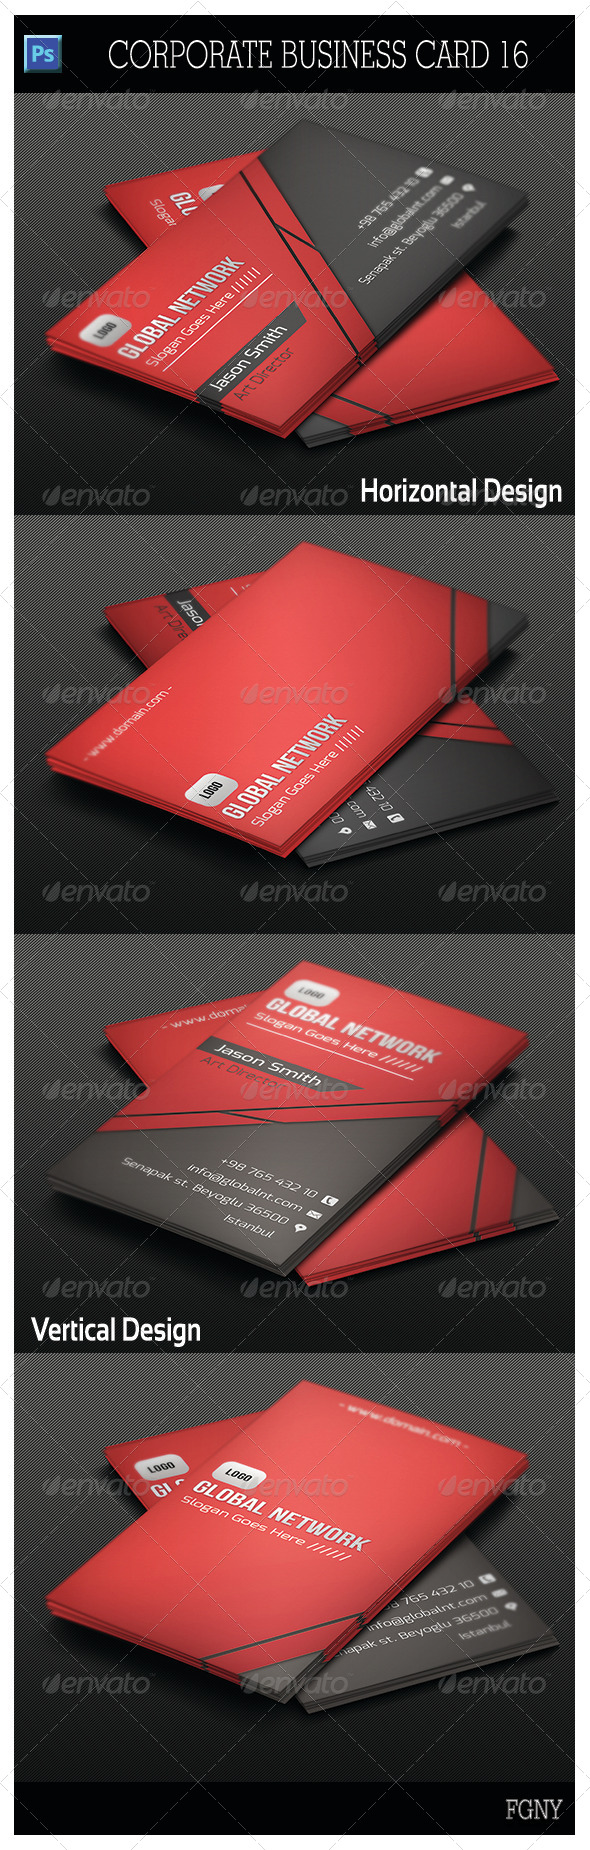 GraphicRiver Corporate Business Card 16 5641322